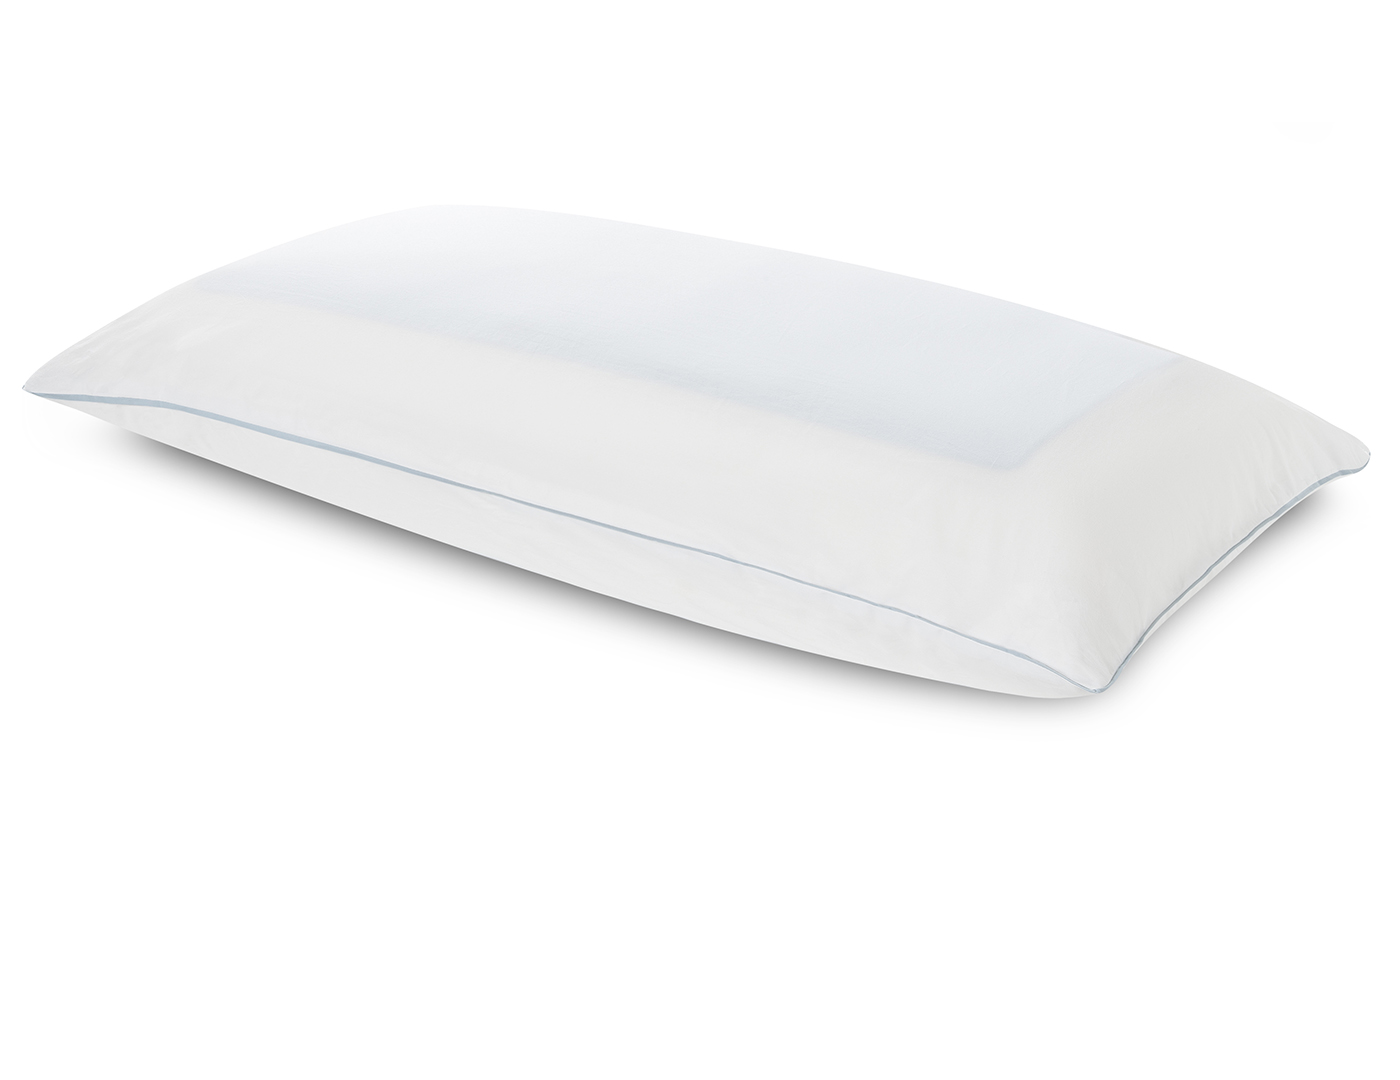 TEMPUR-Cloud Breeze Dual Cooling King Pillow